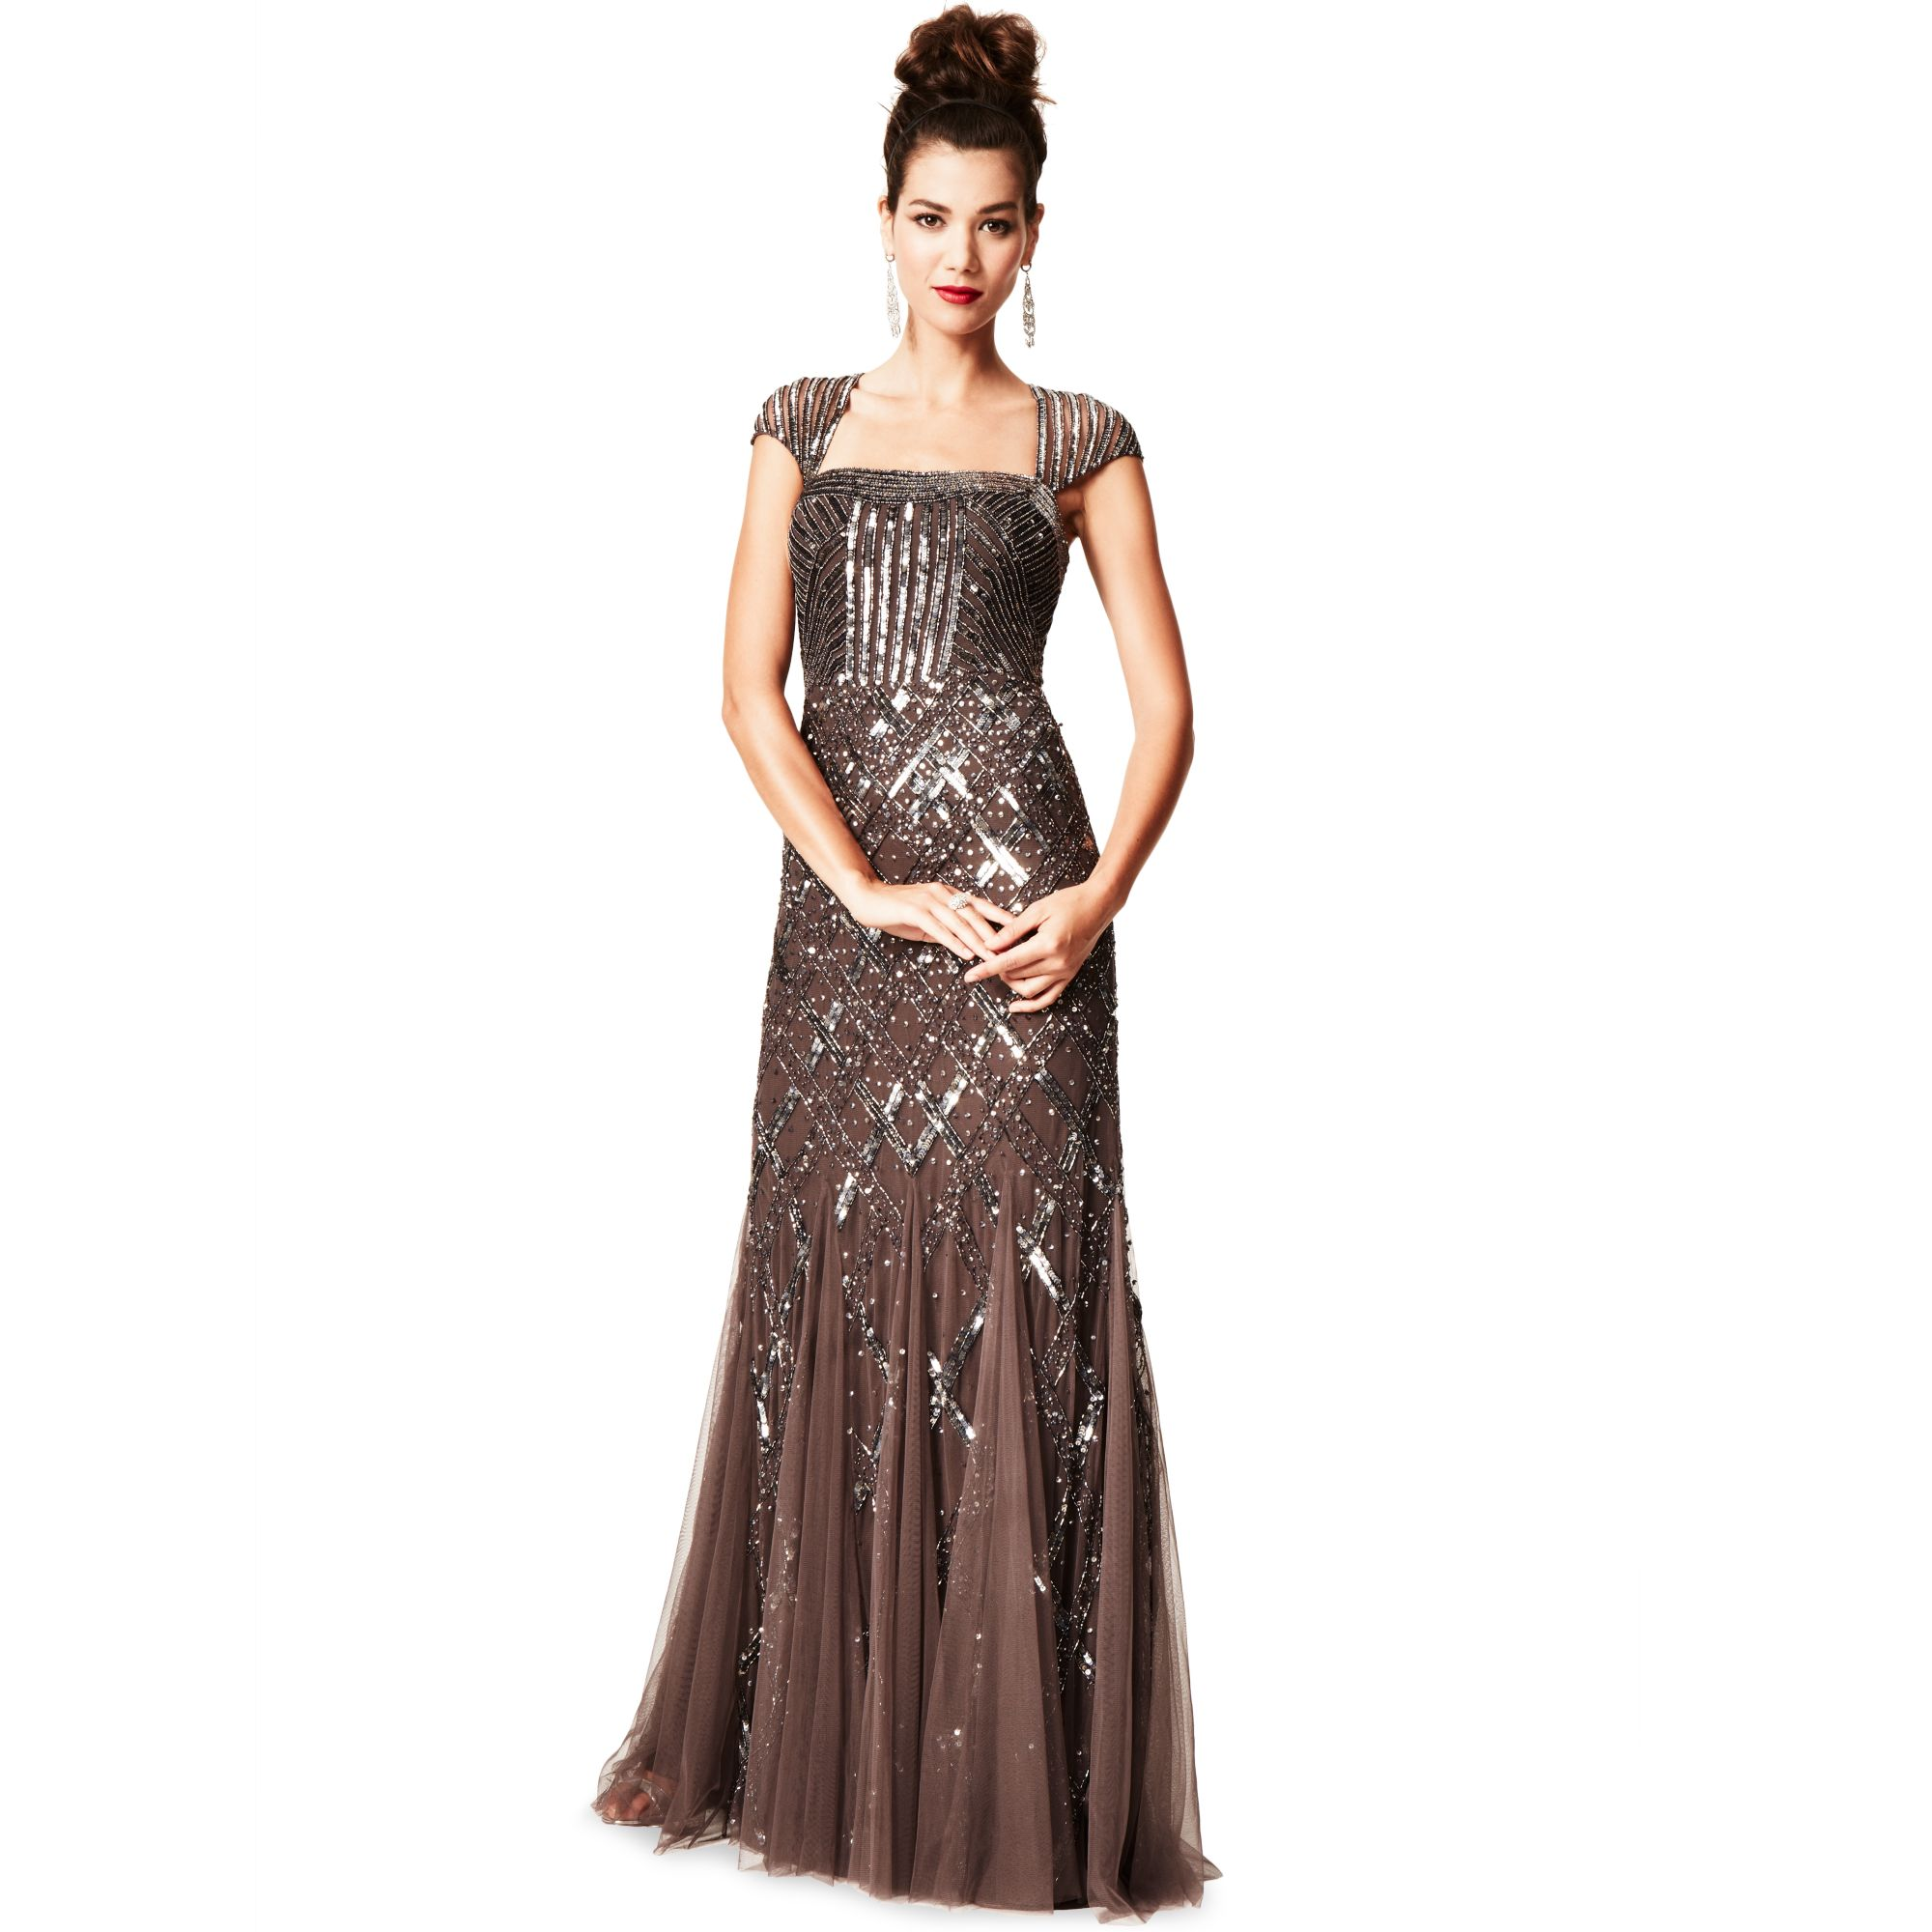 ad63e70689d2 Adrianna Papell Cap Sleeve Sequined Beaded Gown Dress in Purple - Lyst